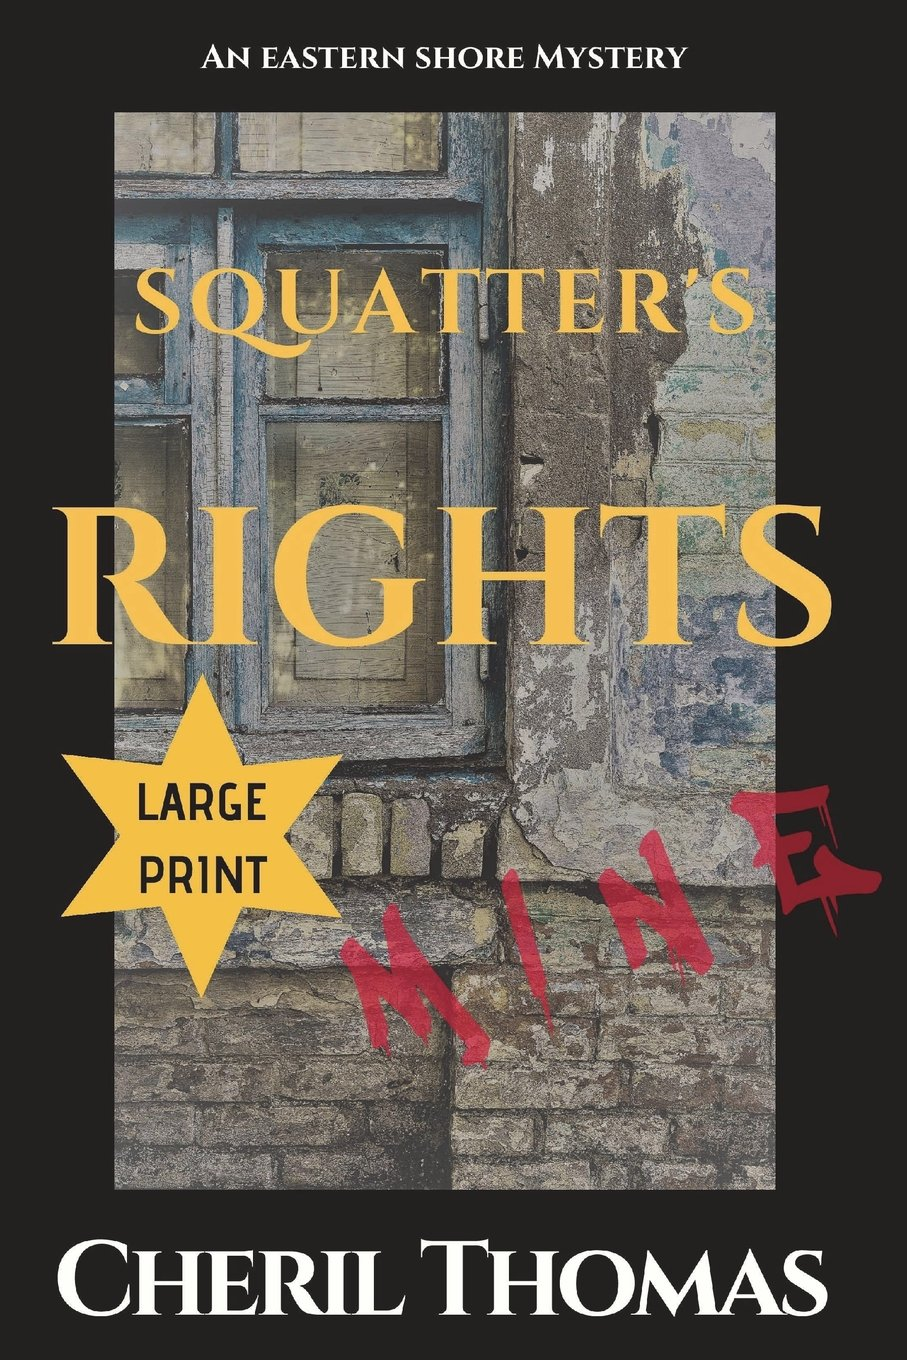 Squatter's Rights Large Print: An Eastern Shore Mystery (Eastern Shore Mysteries) (Volume 1) PDF